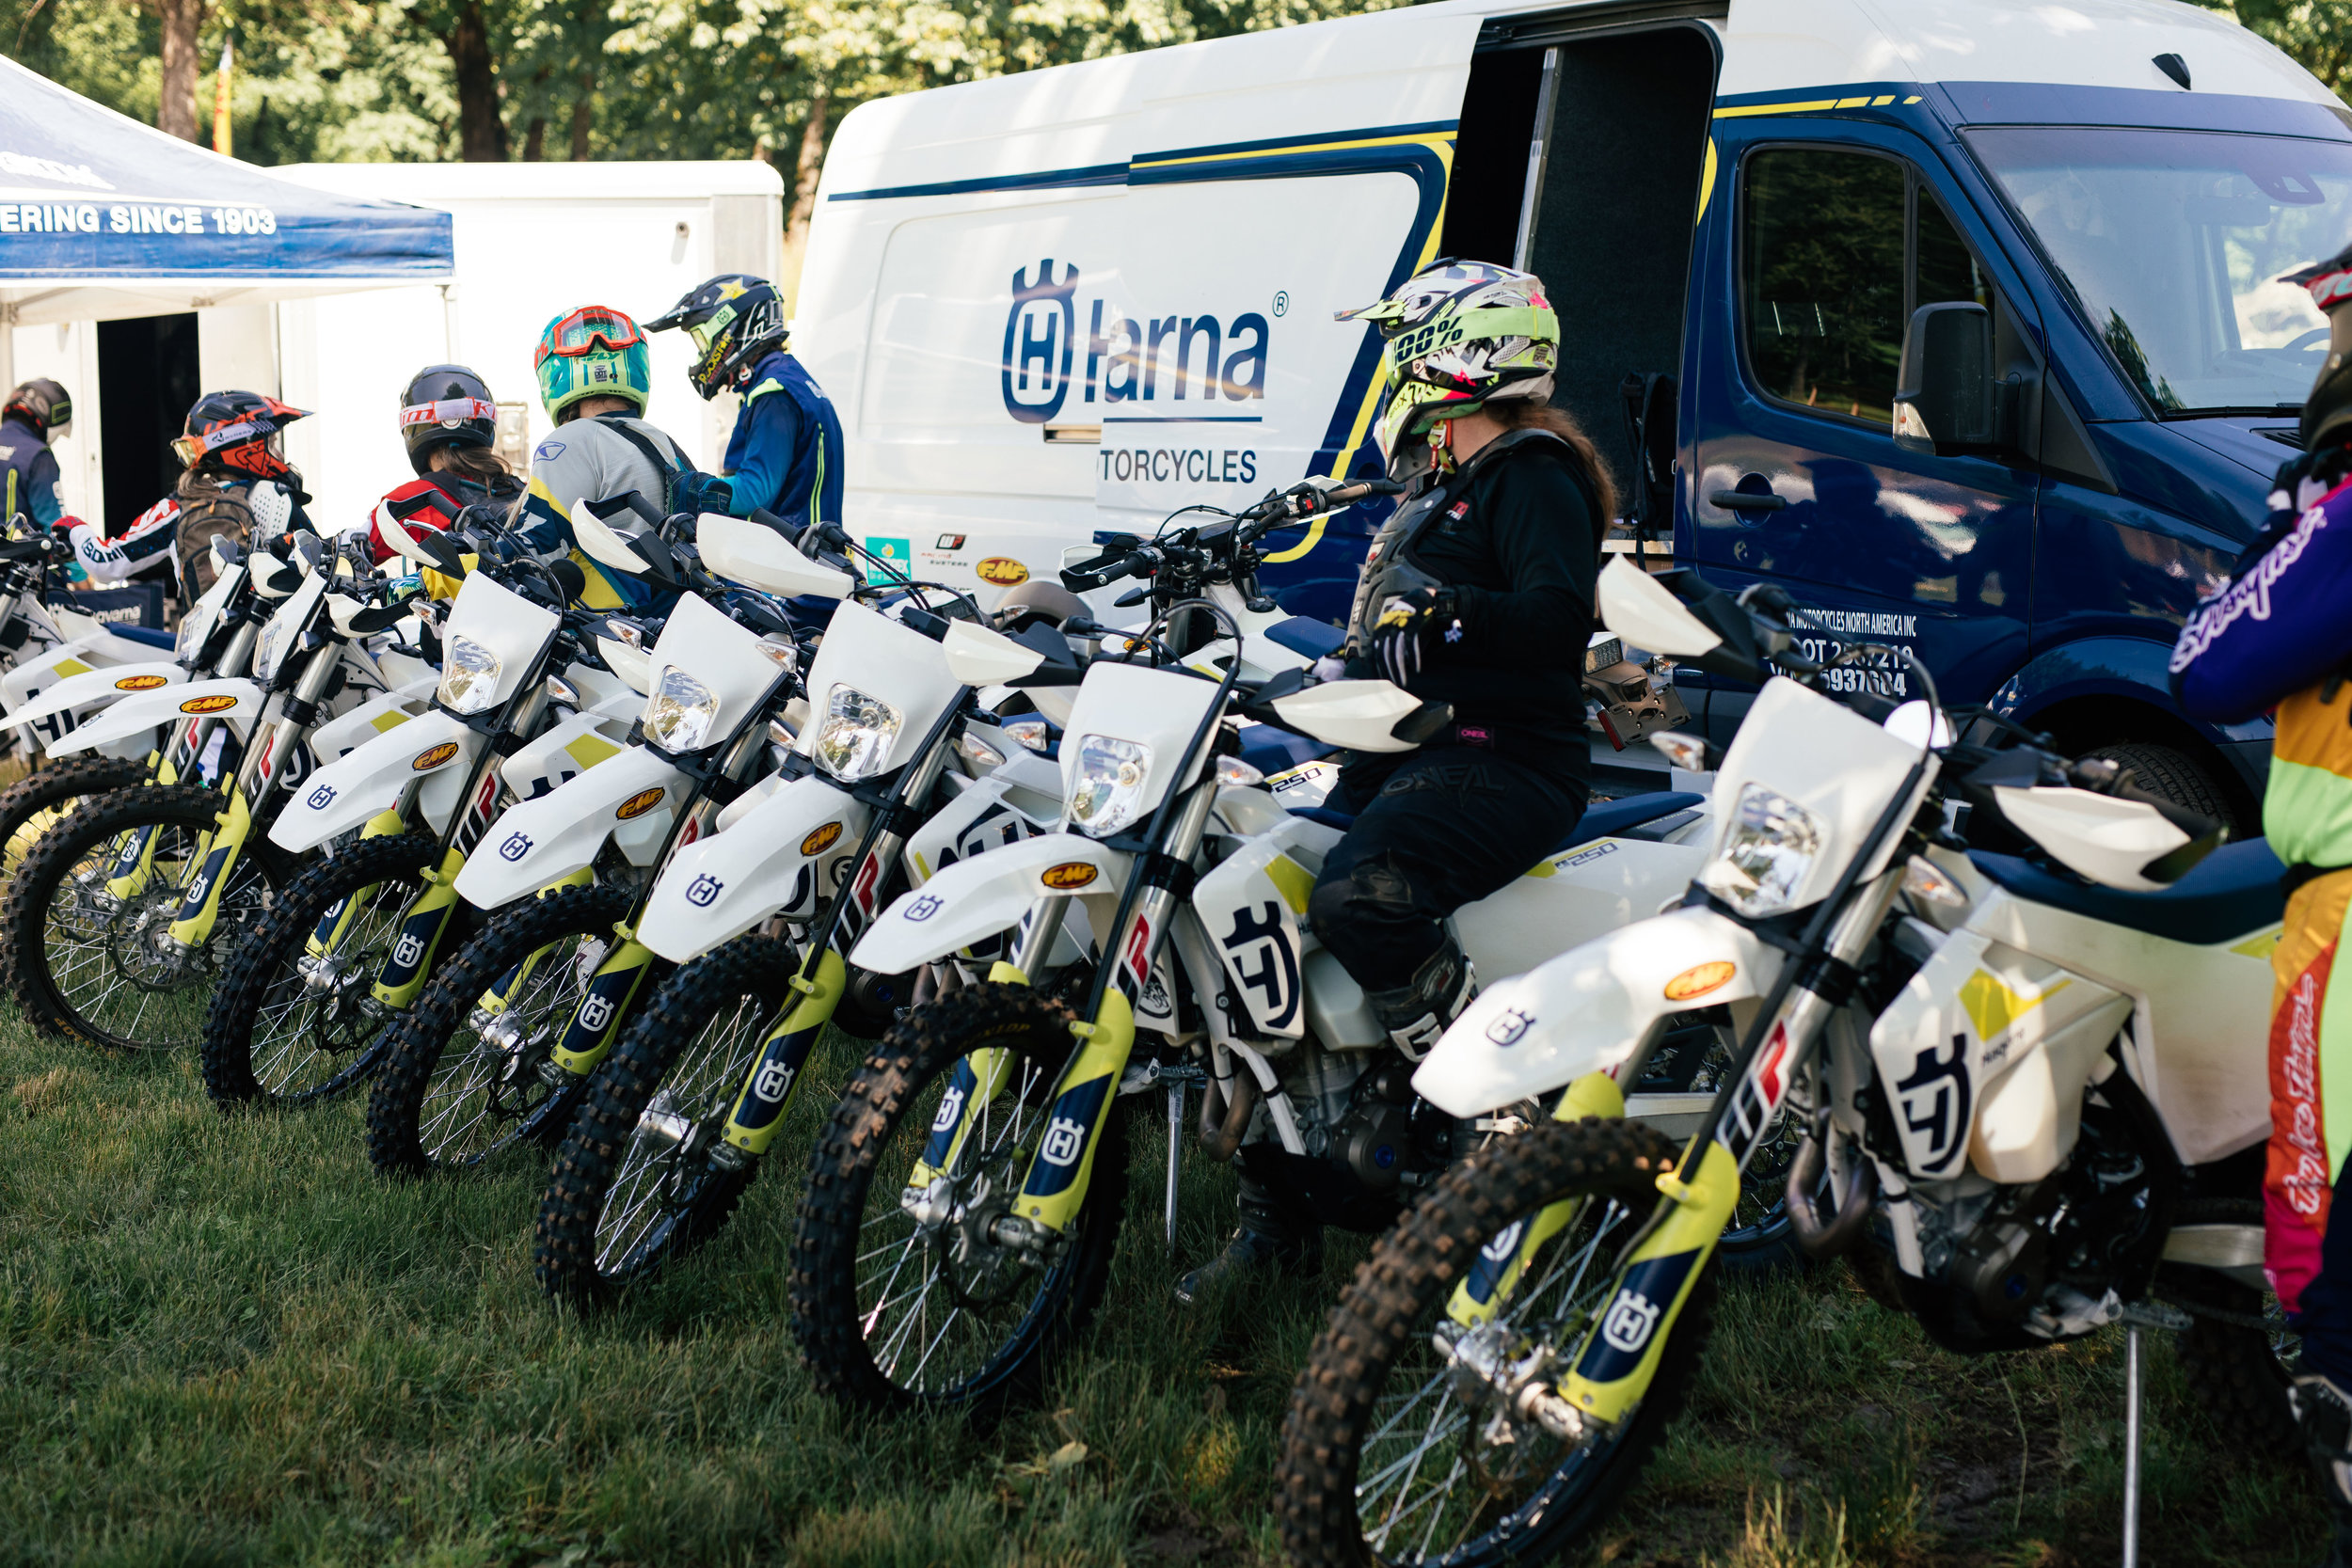 Husqvarna Motorcycles led demo rides during The Main Event on the off-road trail loop around the property with a fleet of FE250's that were set up to accommodate a smaller/lighter built rider as many women are.